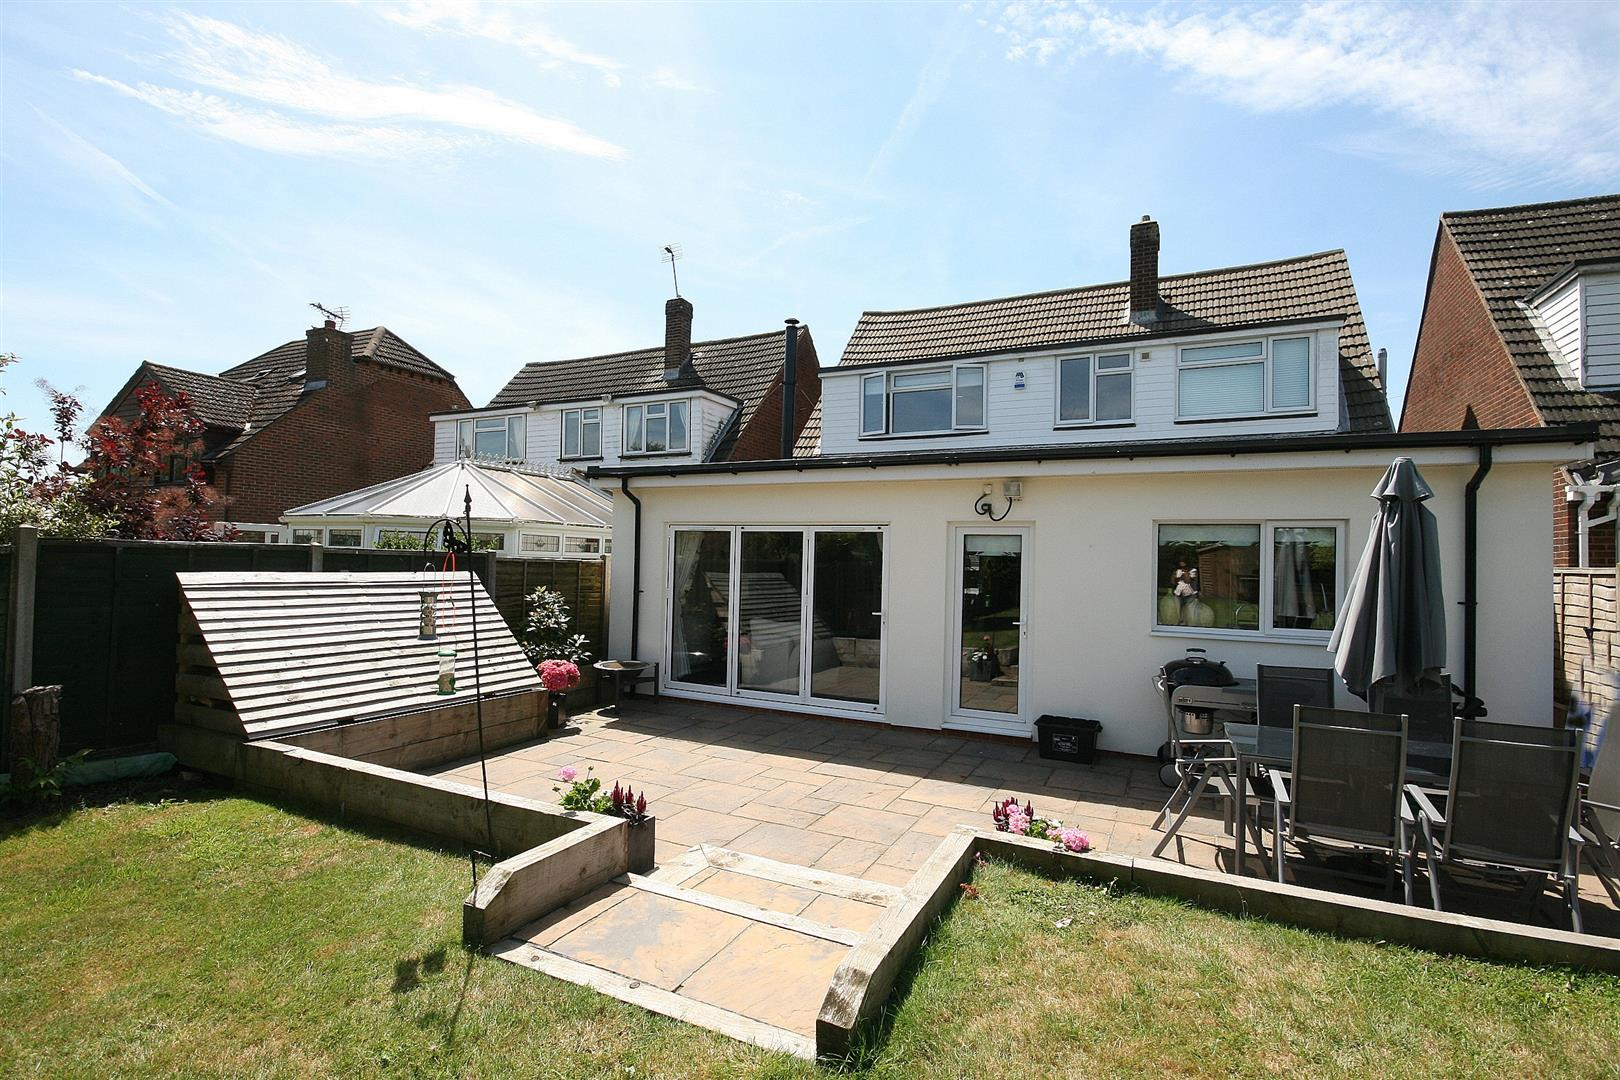 4 Bedrooms Detached House for sale in Dunstable Road, Tilsworth, Beds